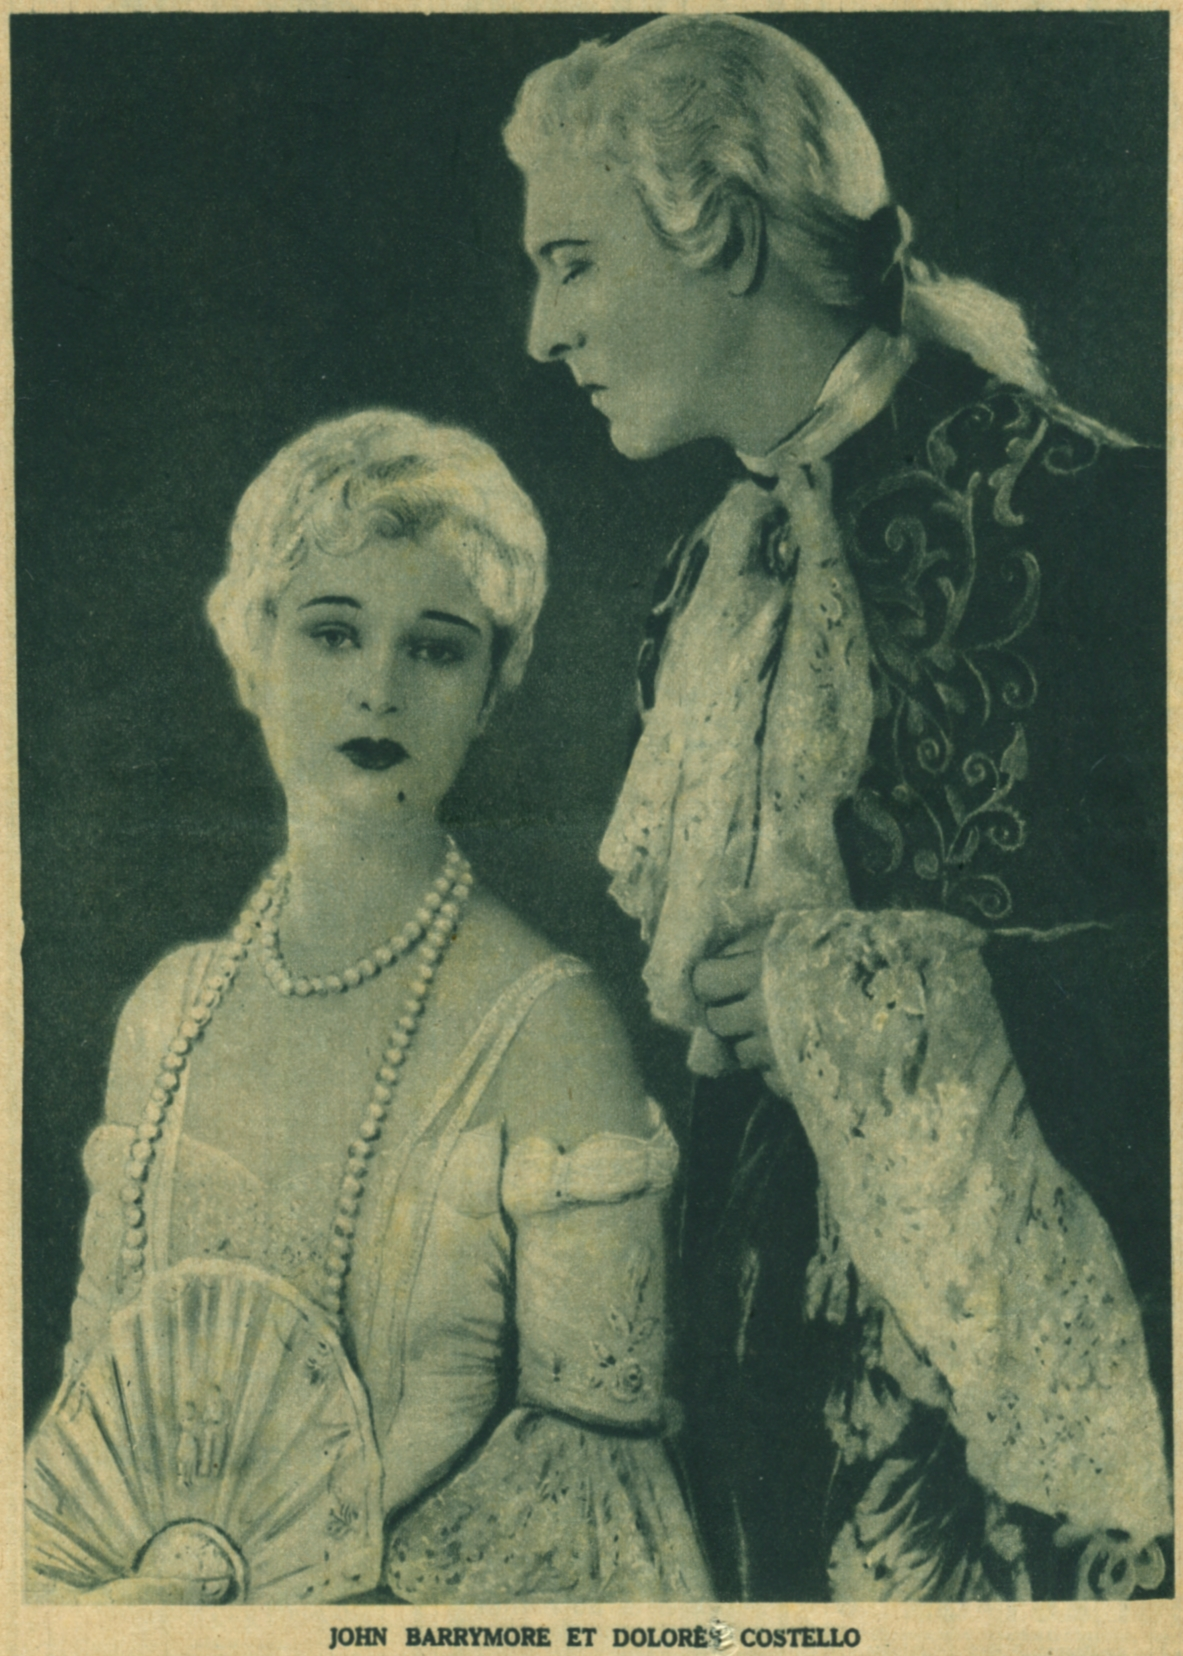 John Barrymore and Dolores Costello in When a Man Loves (1927)